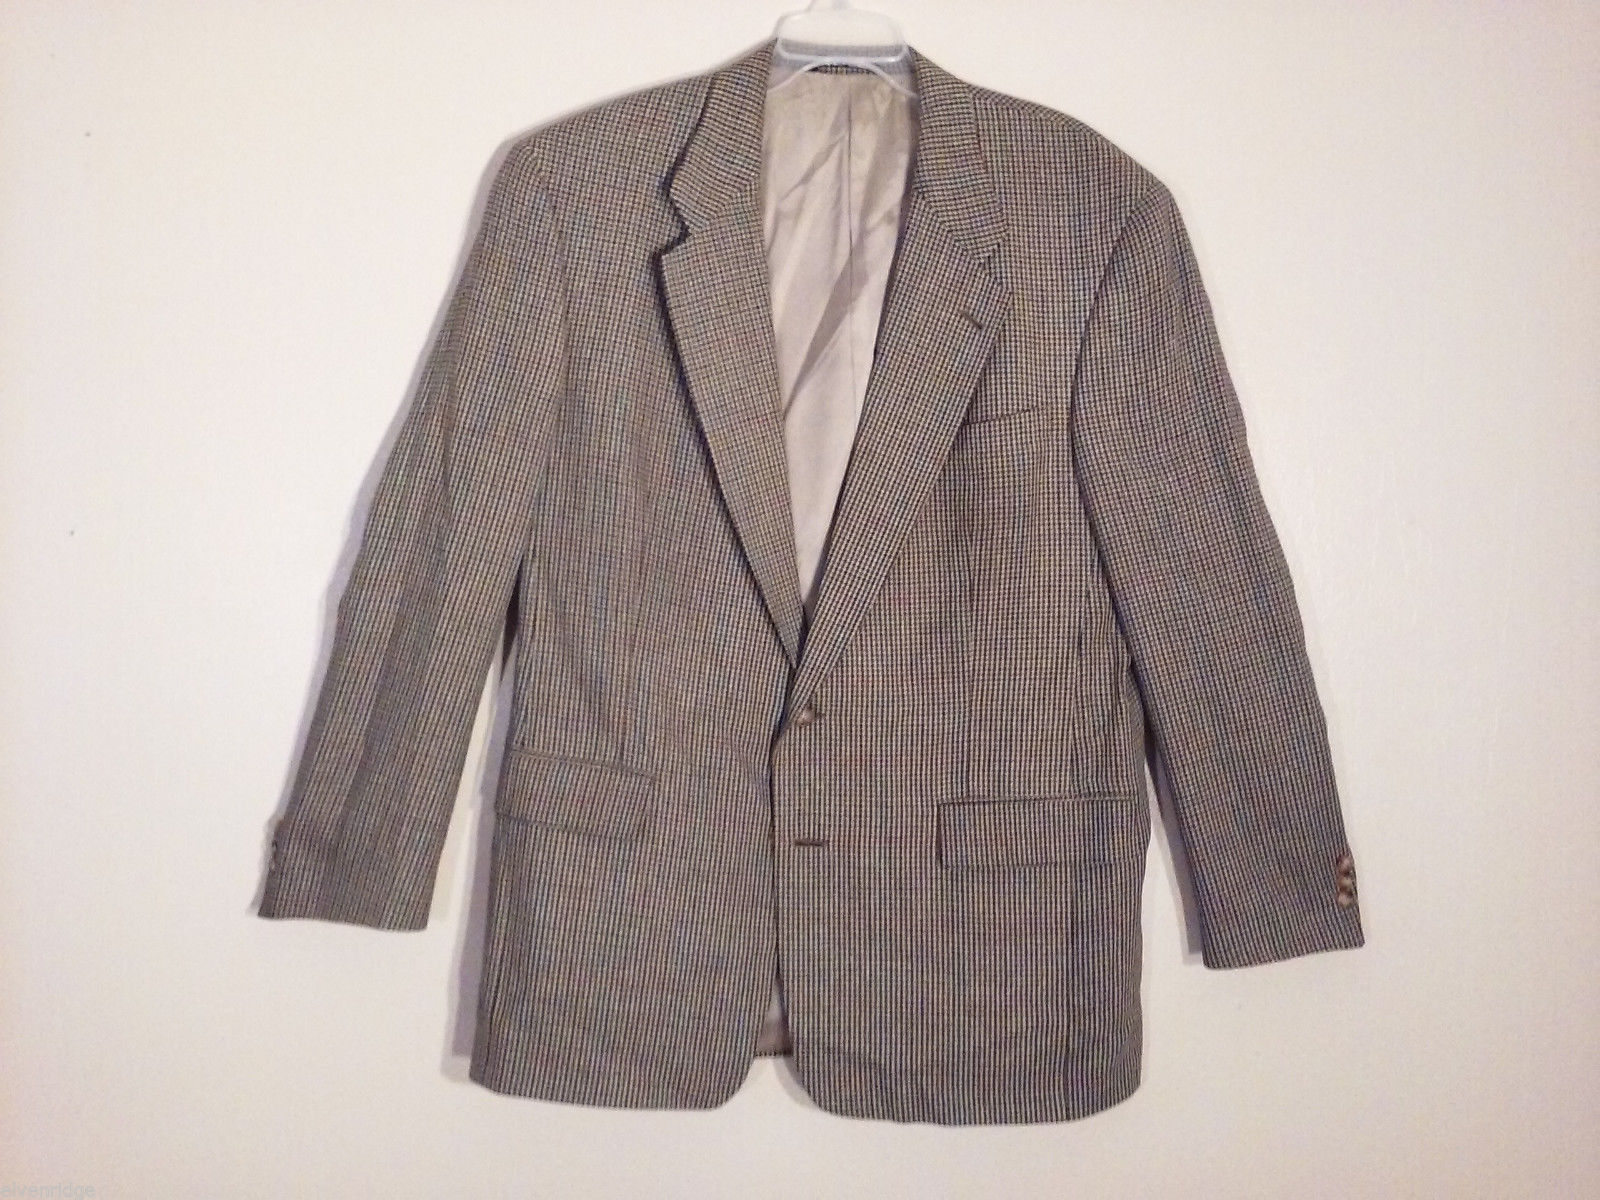 Burberry Men's Size 43 US XL Blazer Coat Wool-Silk Blend Brown Multi Houndstooth